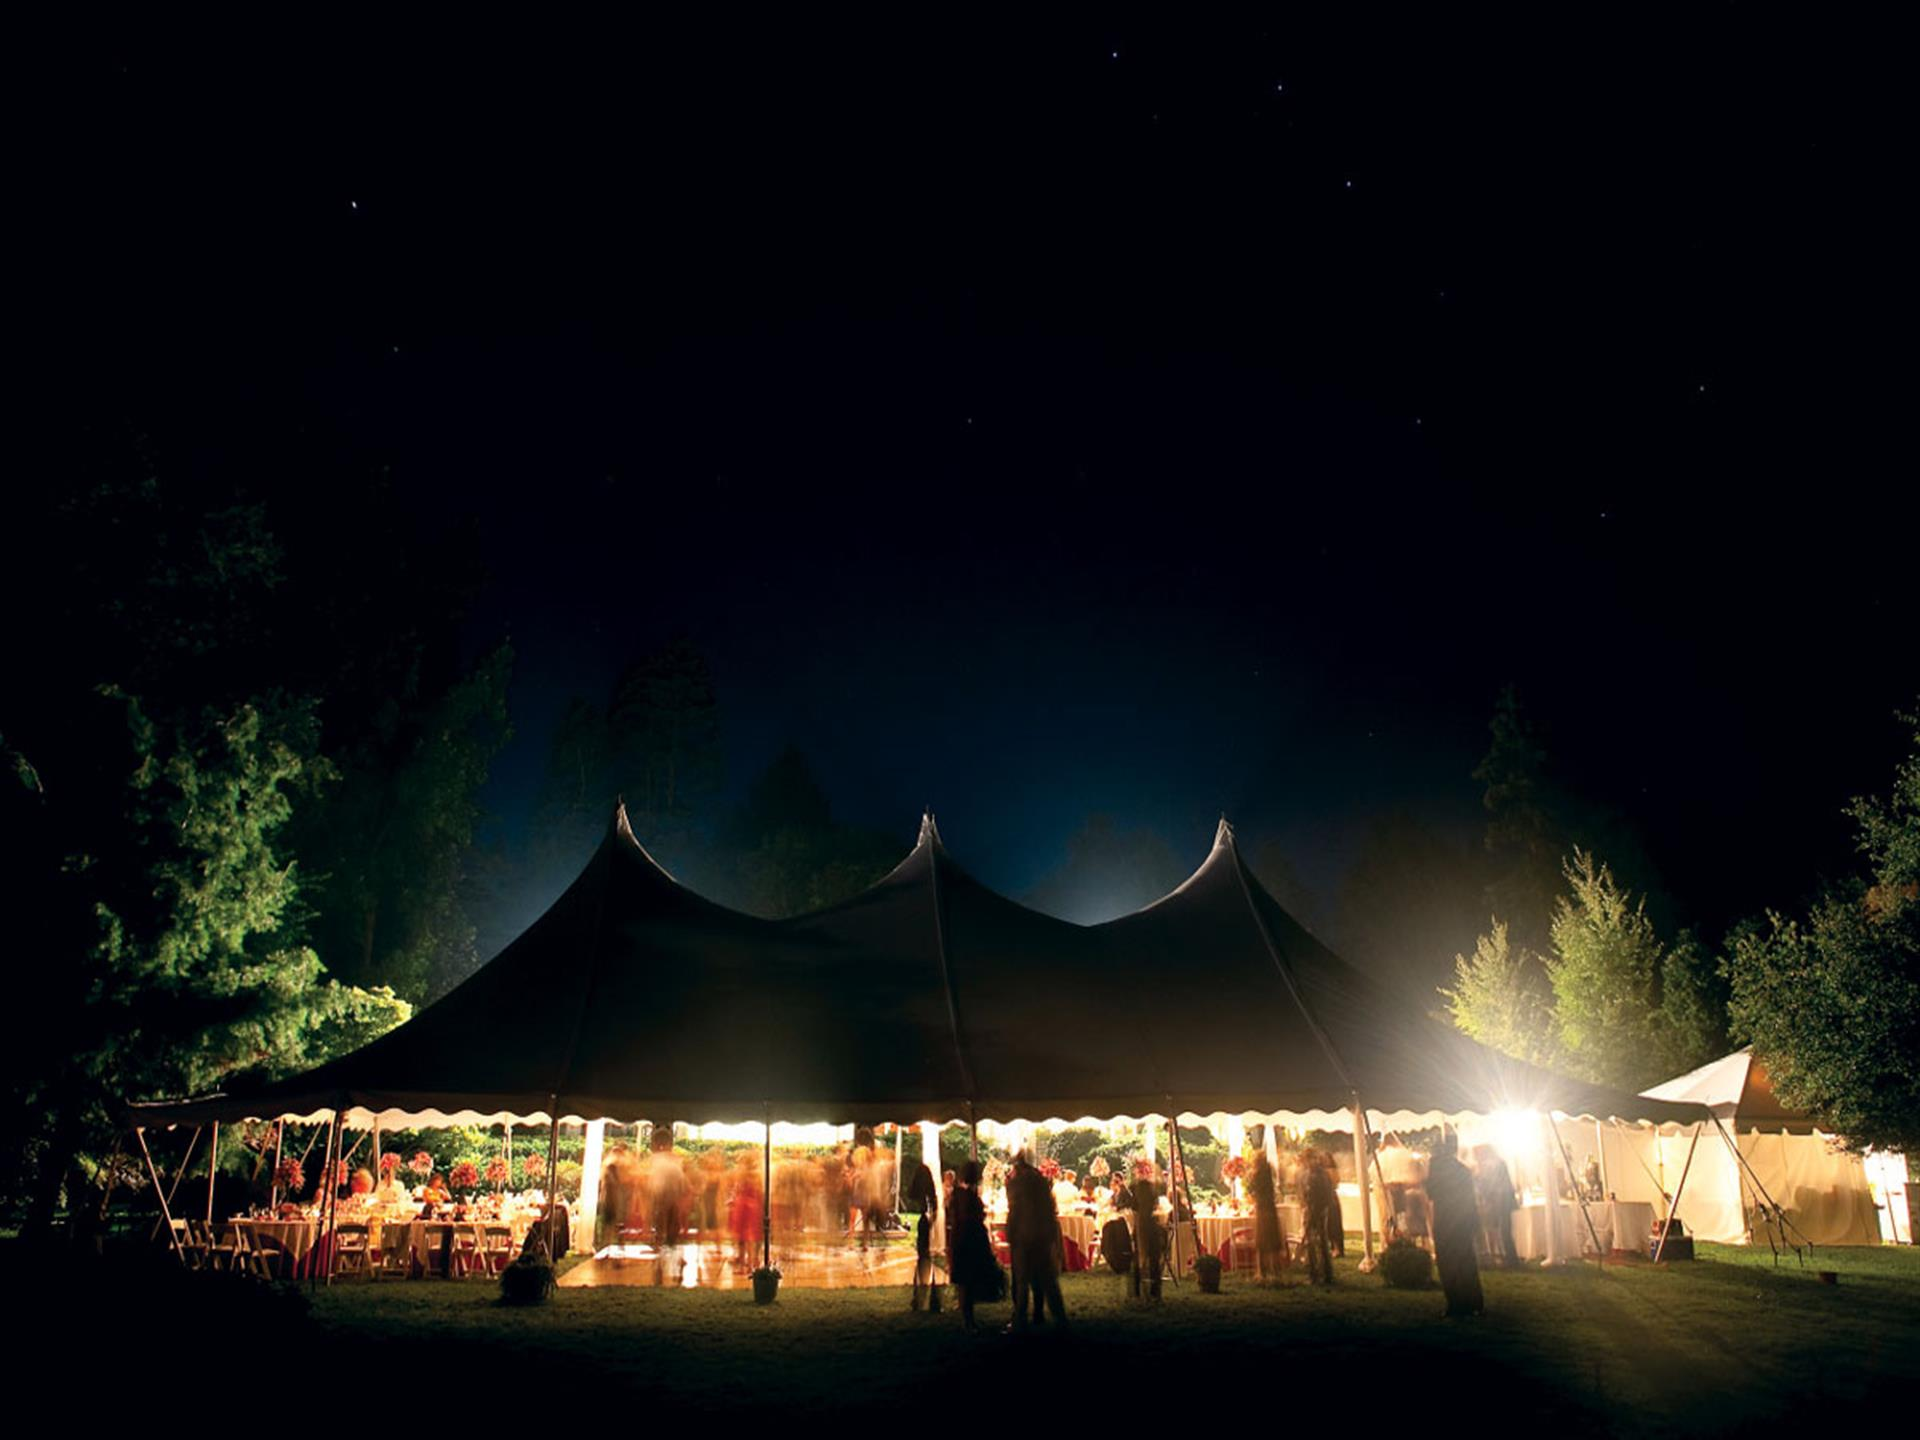 party tent lit up at night